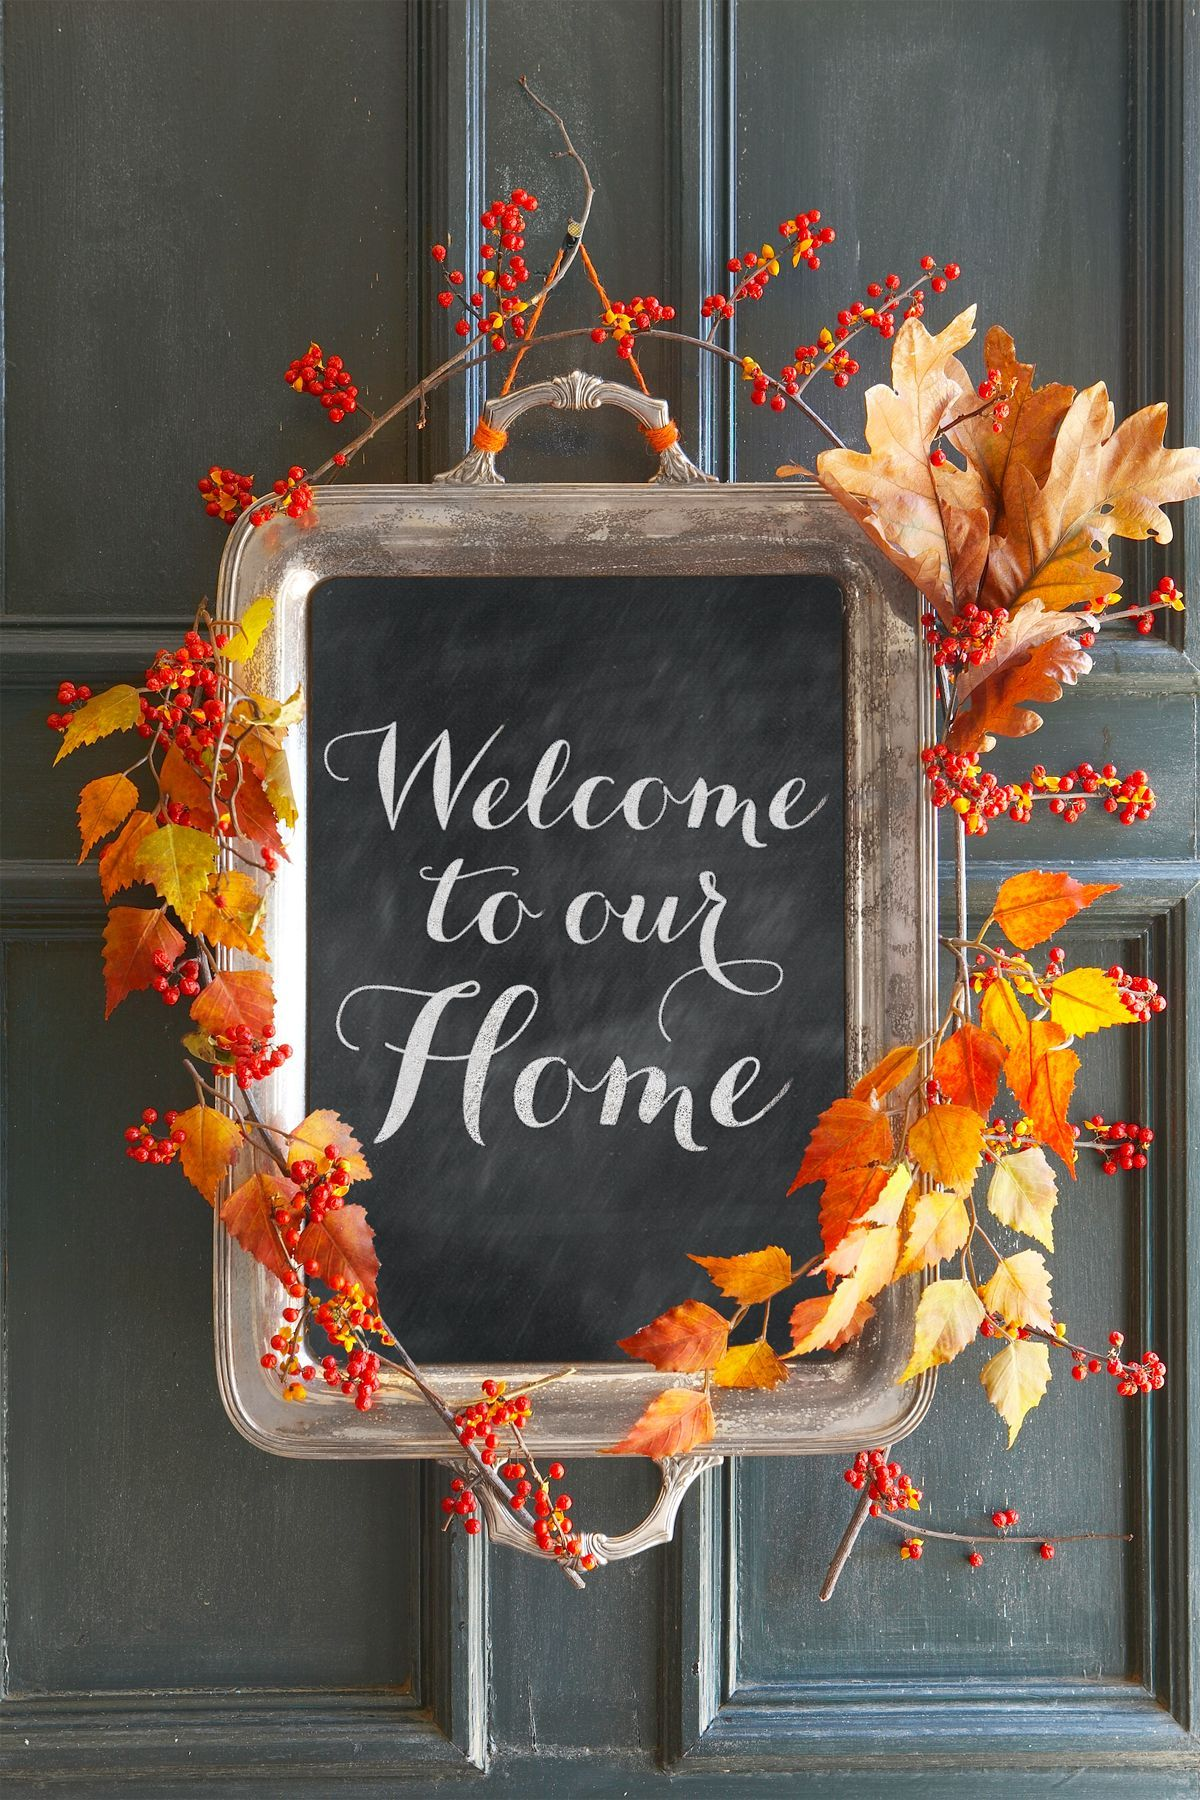 Diy Wreaths Signs And More To Decorate Your Front Door This Fall Fall Door Decorations Fall Crafts Diy Diy Fall Wreath